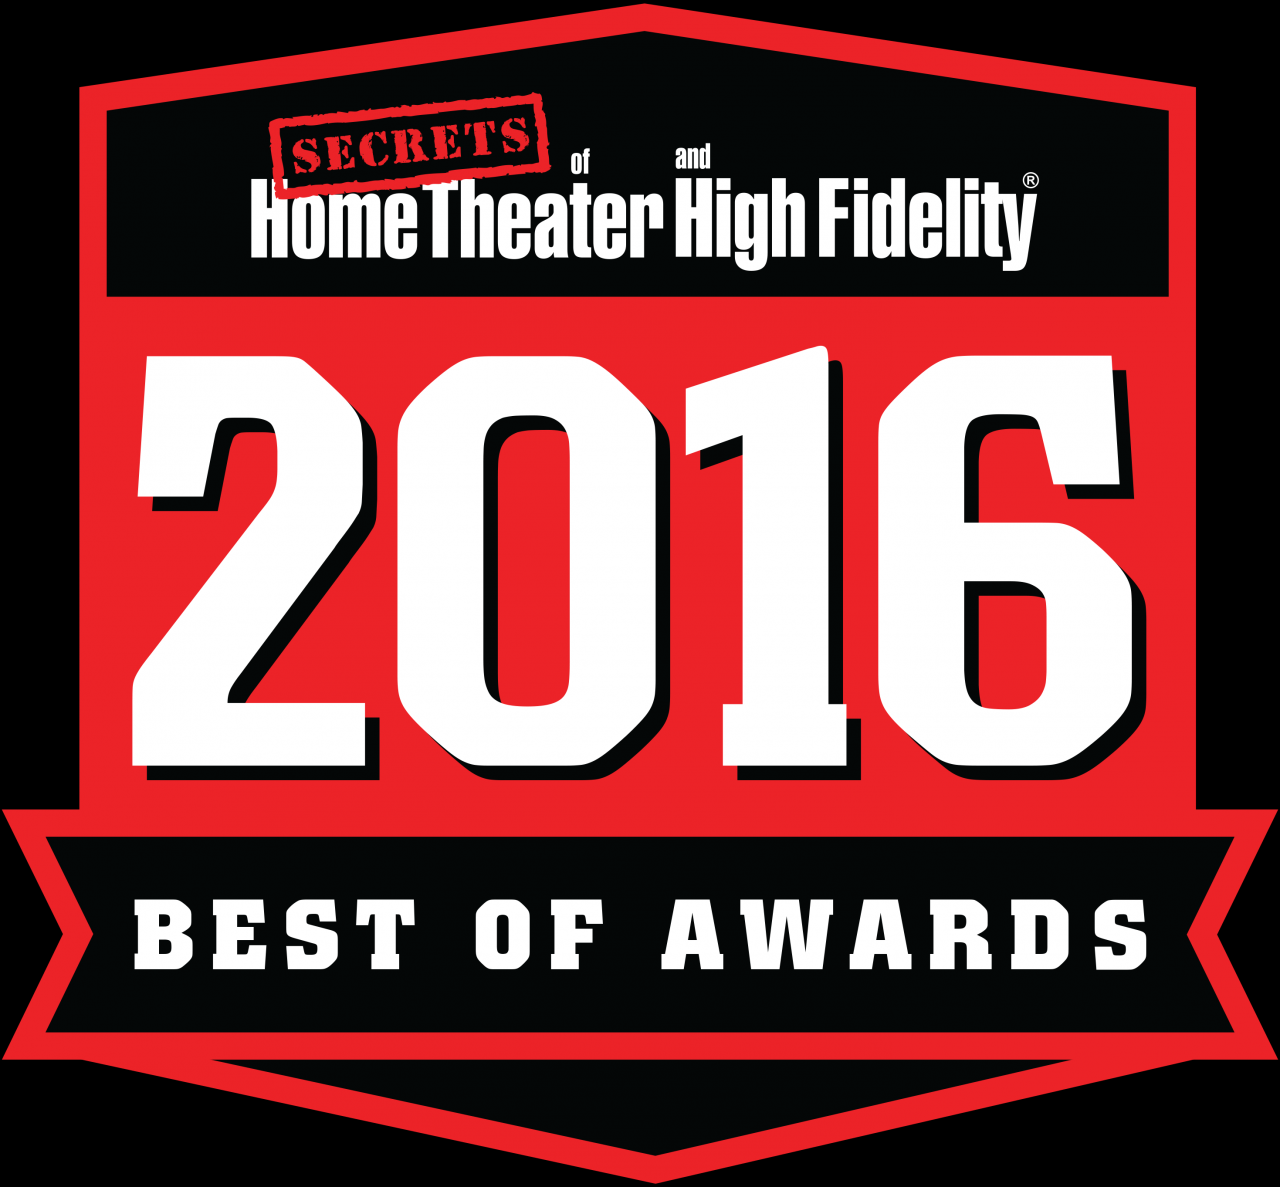 Secrets of Home Theater and High Fidelity - Best Of Awards 2016